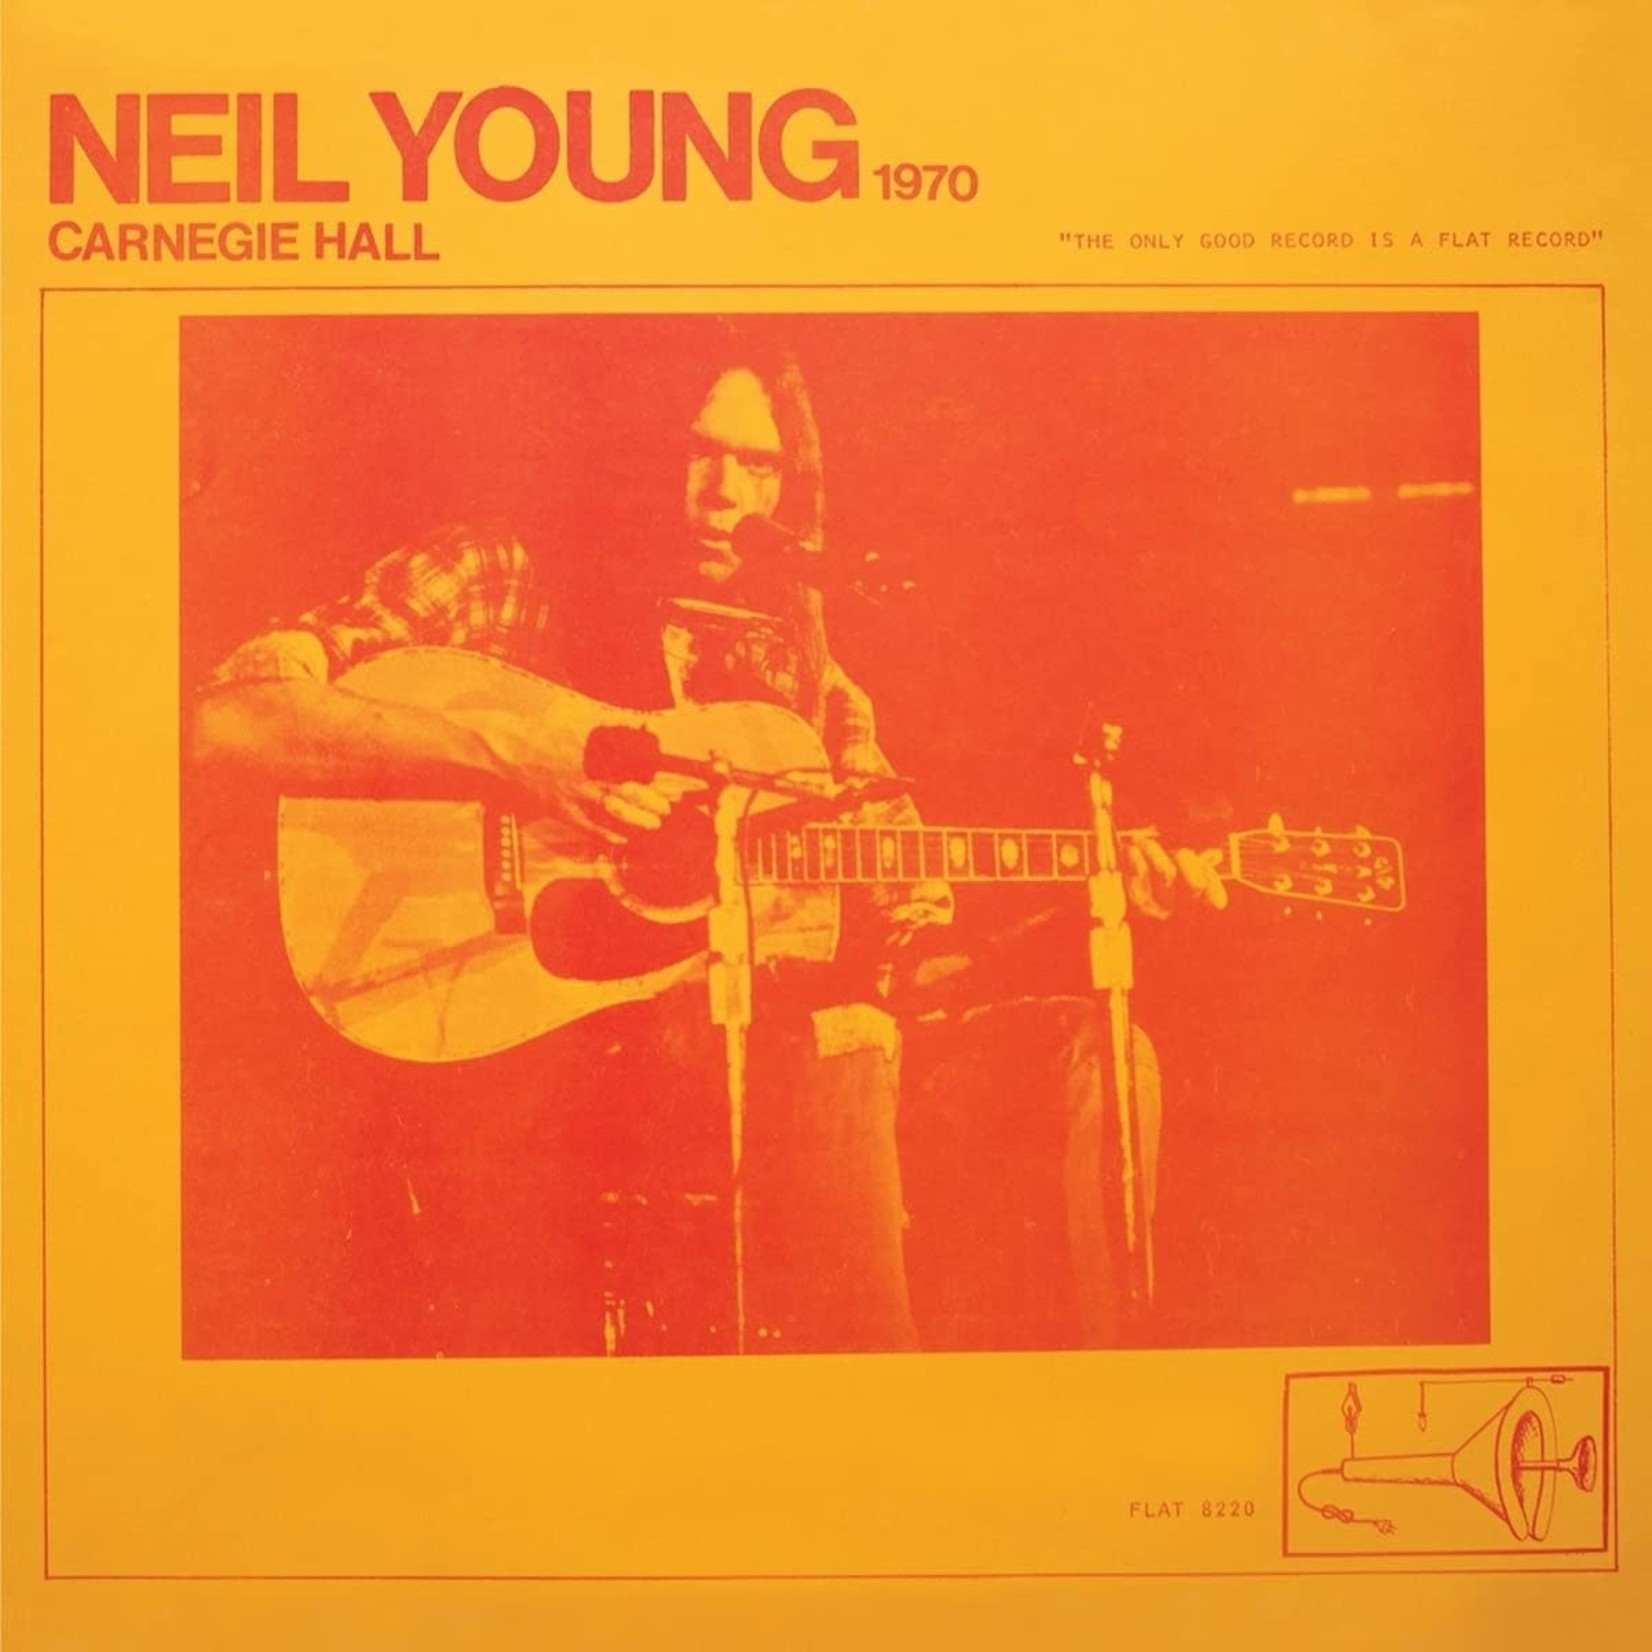 NEIL YOUNG CARNEGIE HALL 1970 (2LP)